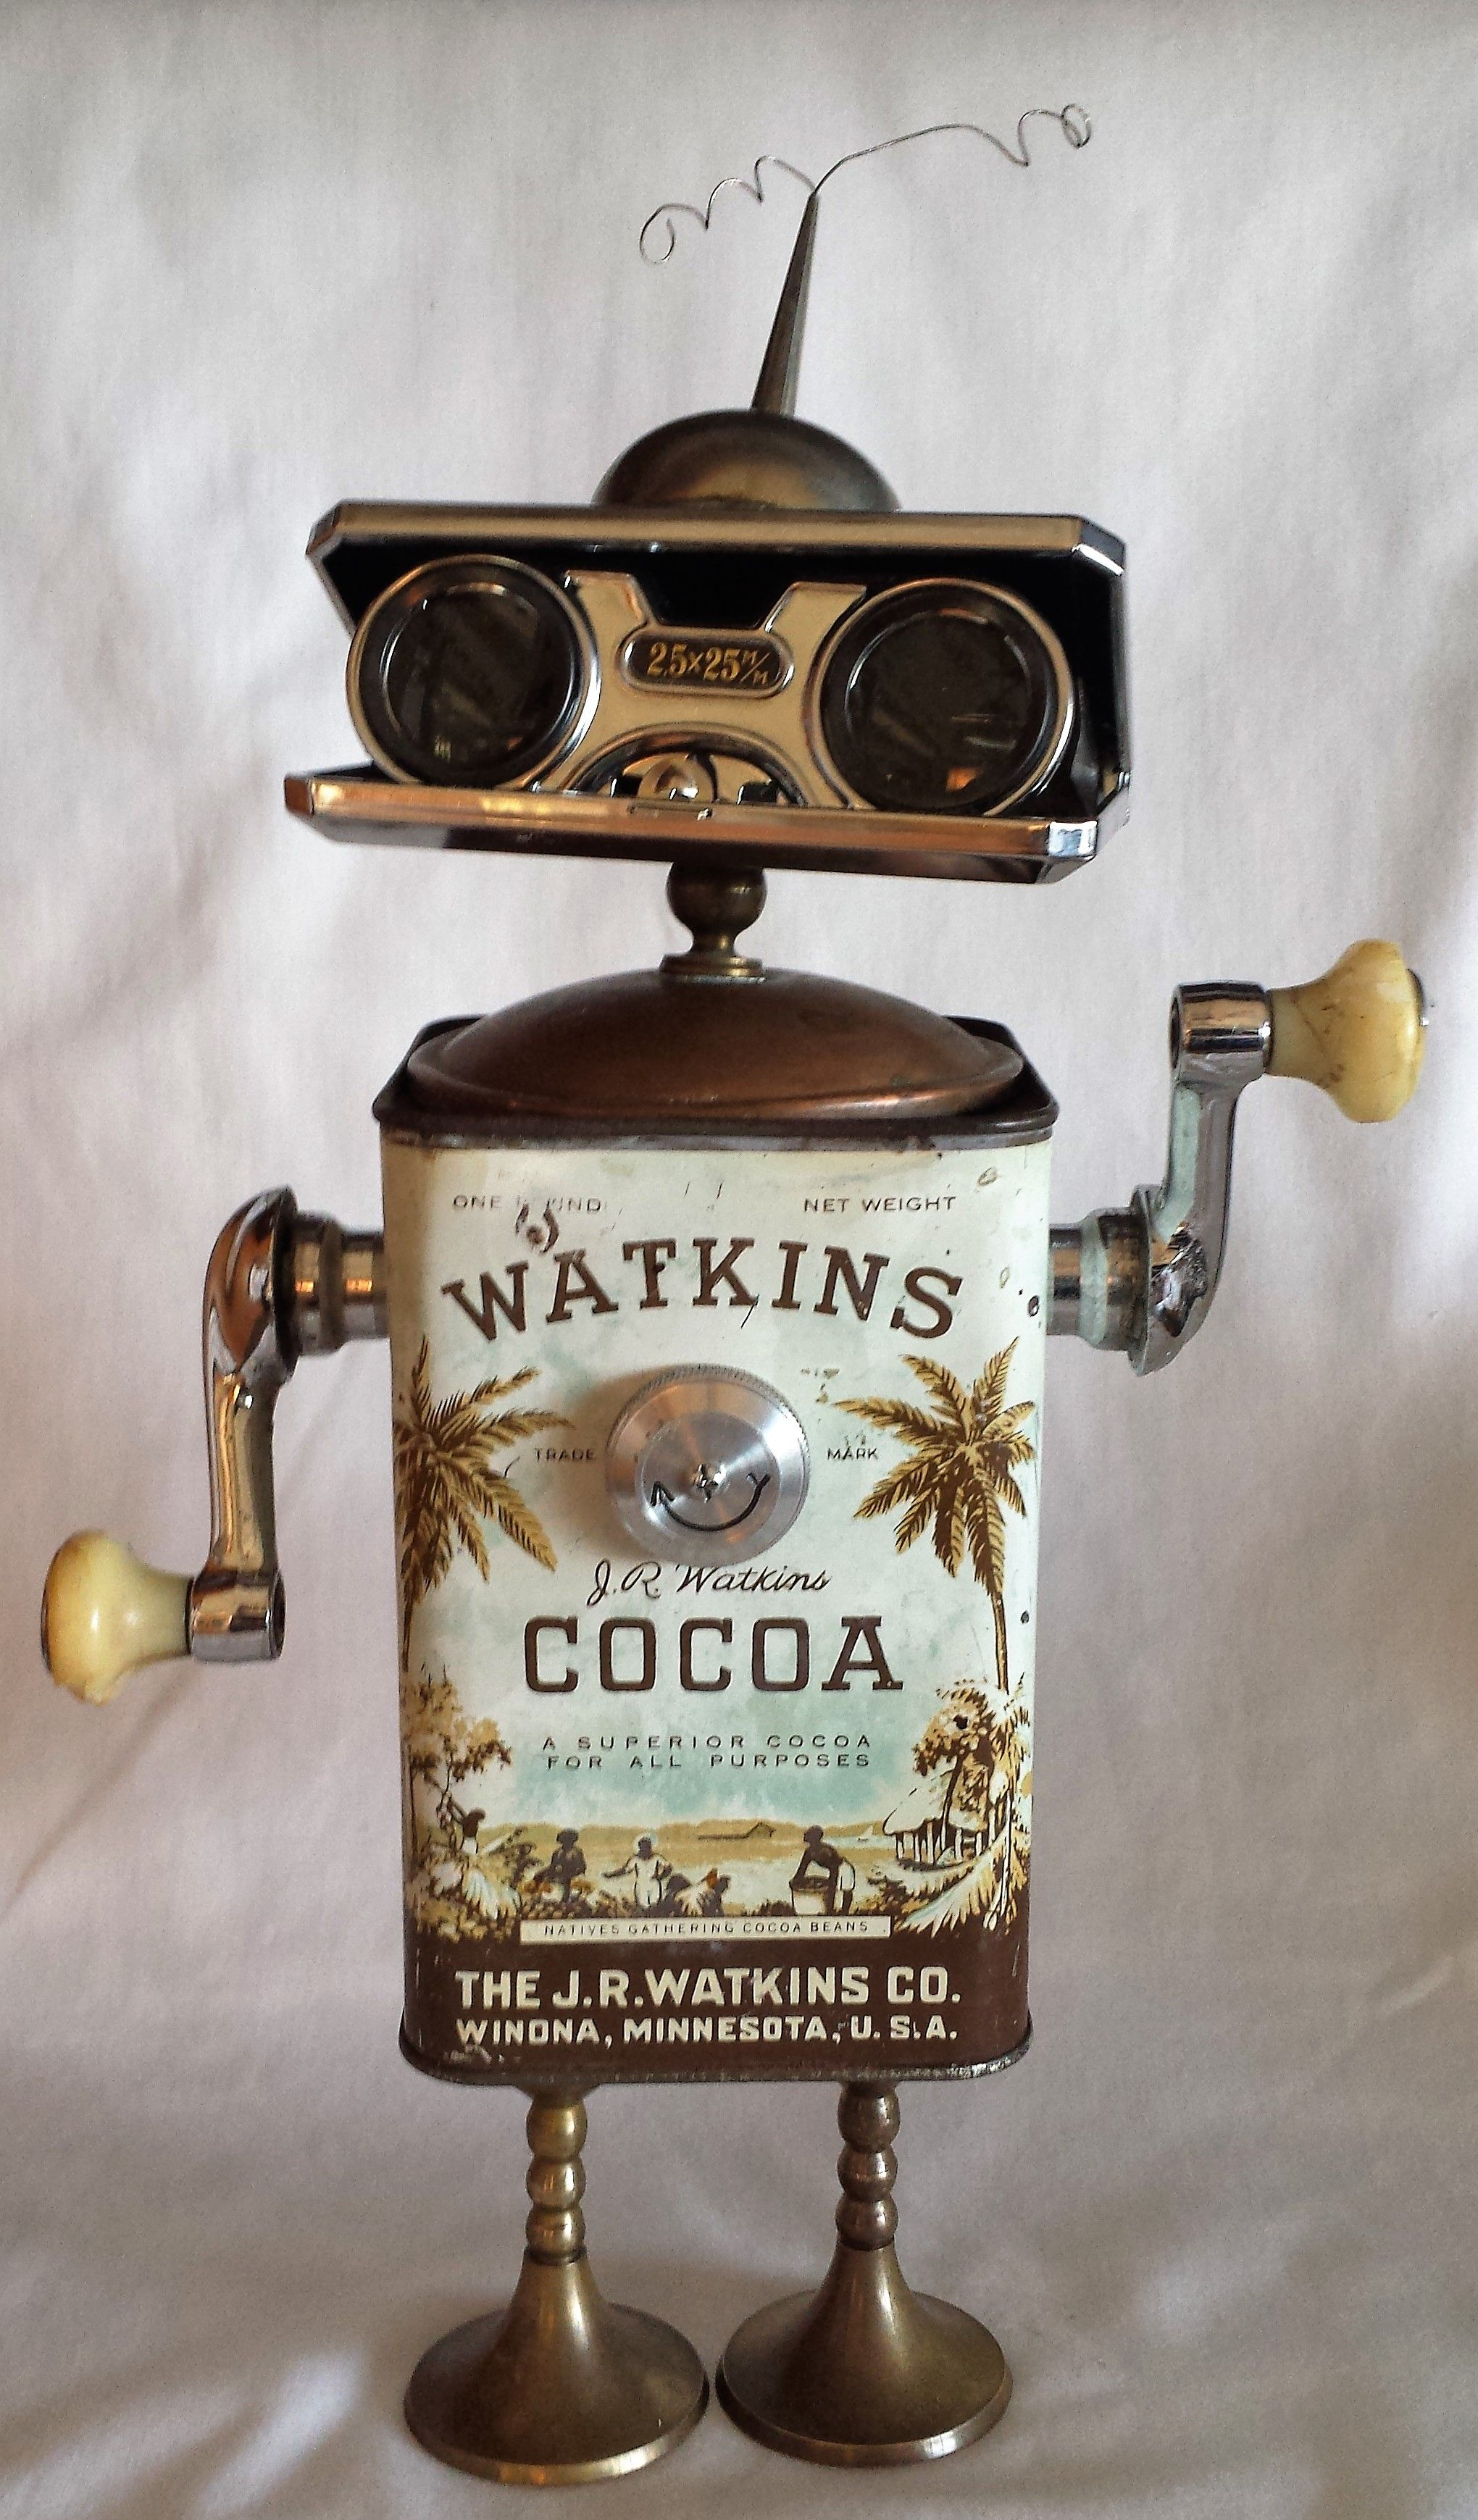 maximo communication template - found object assemblage robot metal artwork pinterest